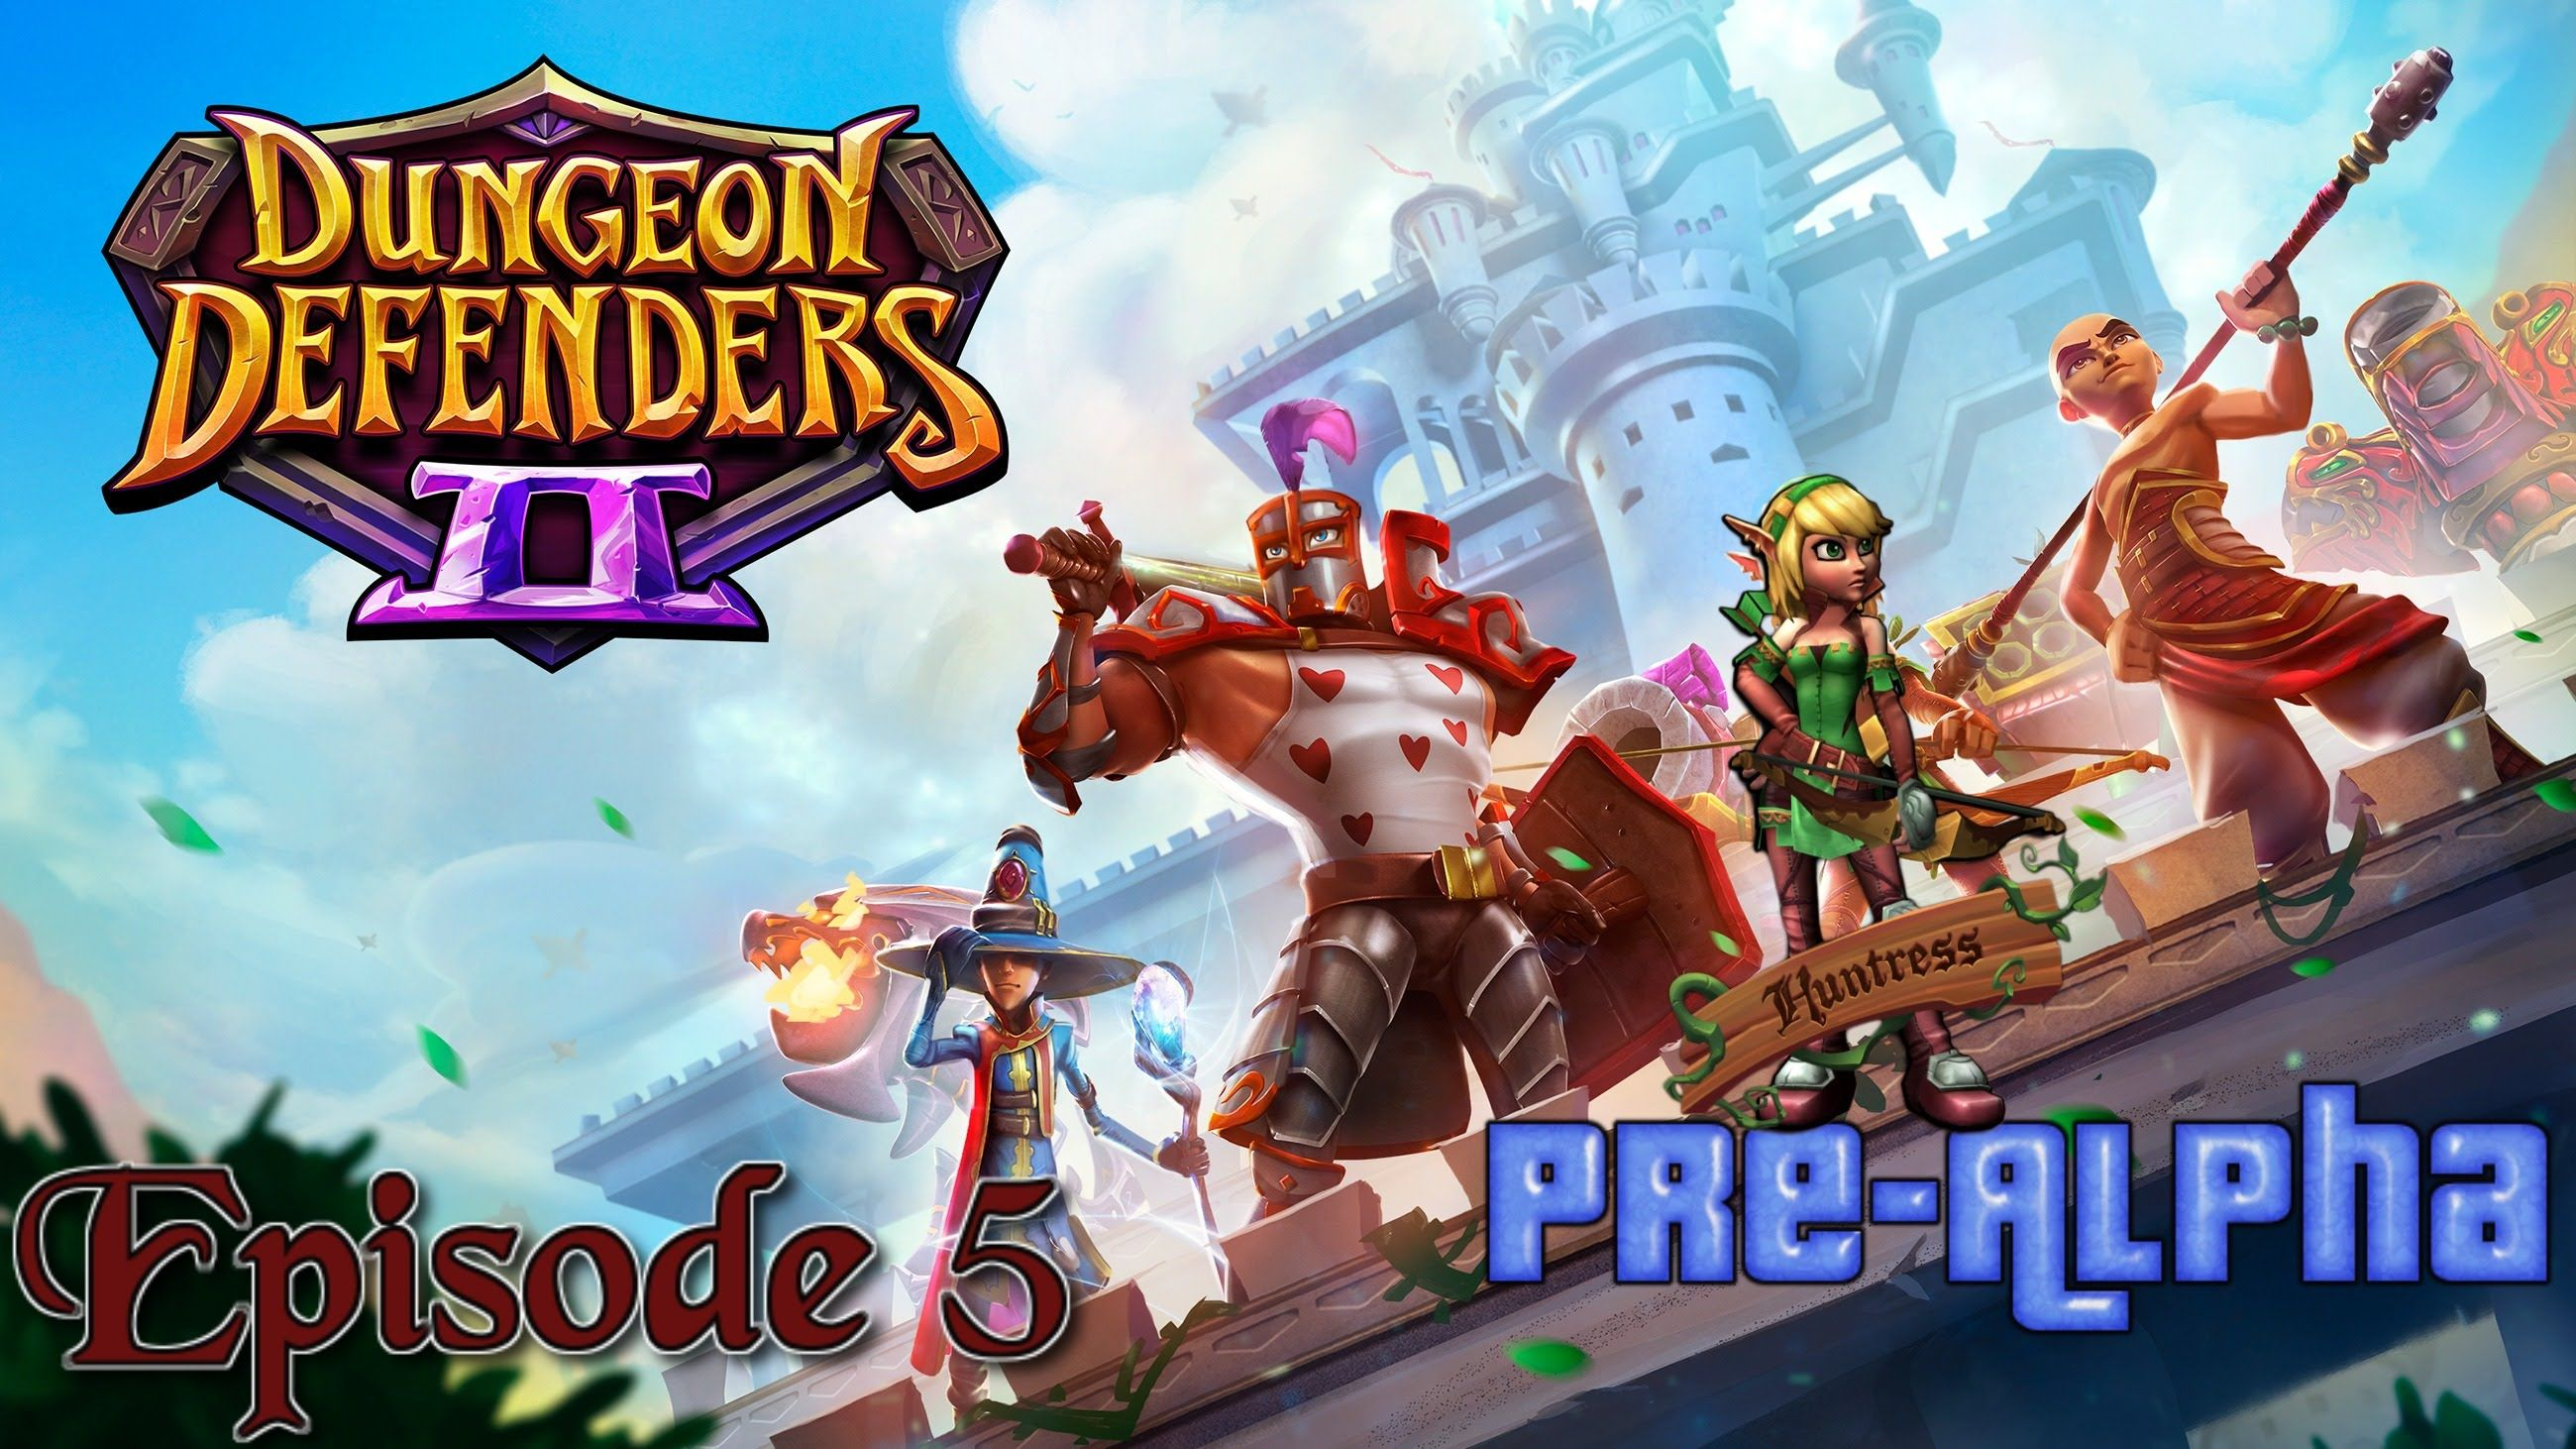 Dungeon Defenders 2 PS4 PreAlpha Episode 5 (With images